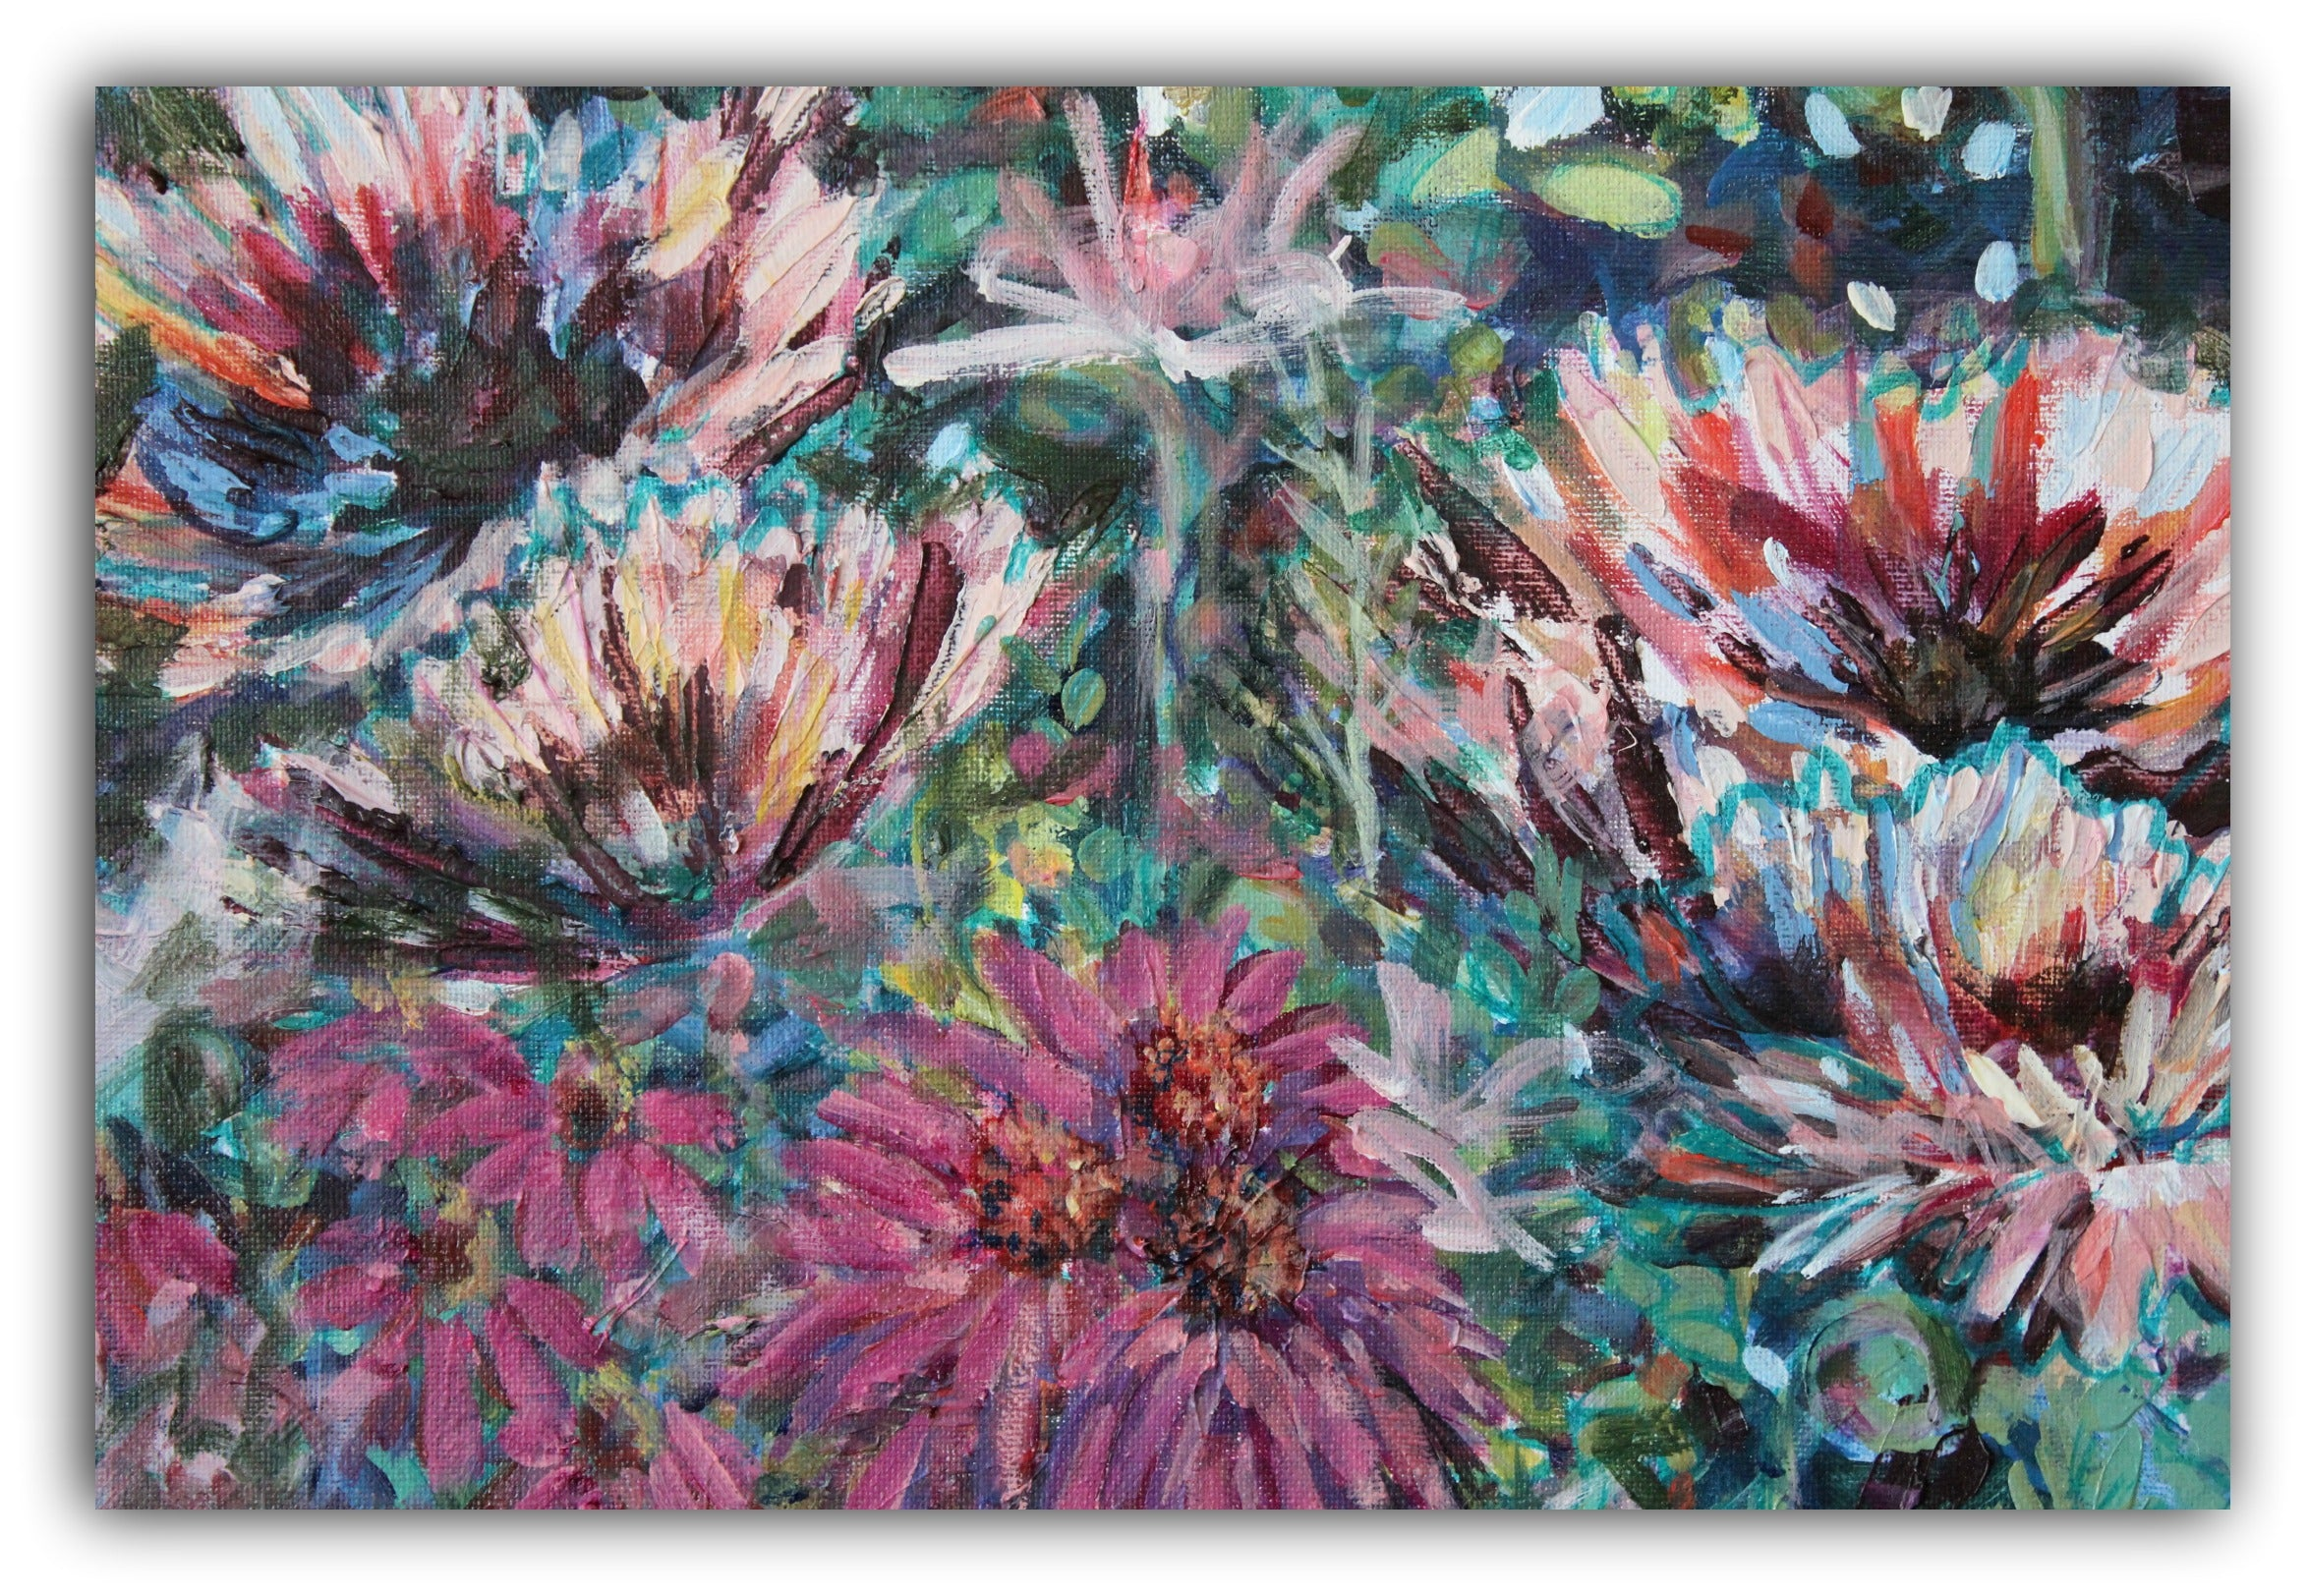 FLORAL GRAFFITI, Original Art by Rea Kelly.